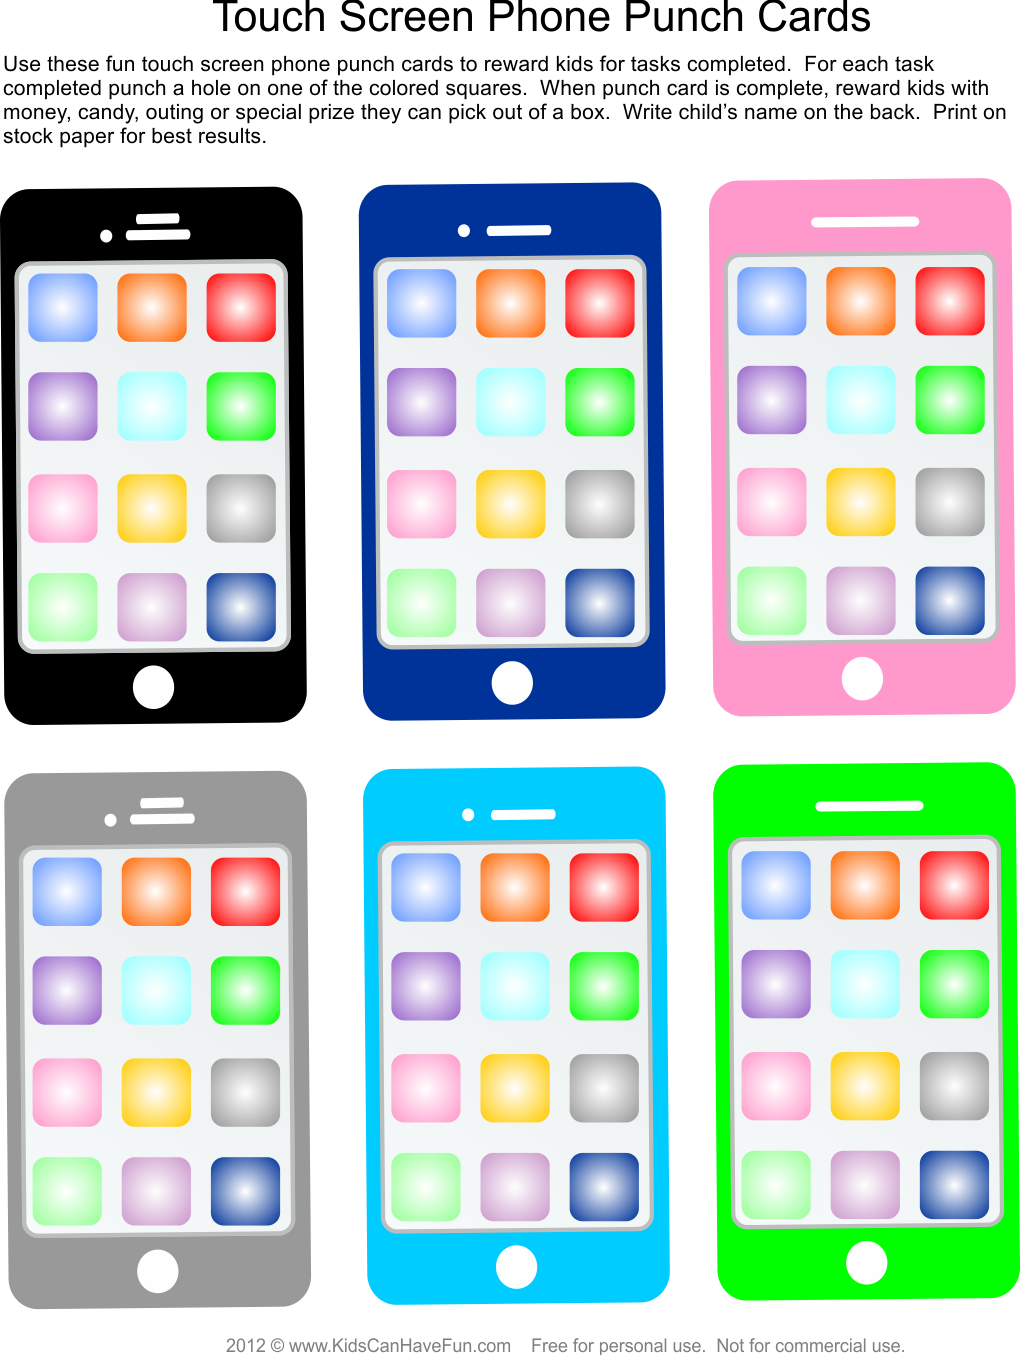 Motivational Touch Screen Phone Punch Cards for Kids to